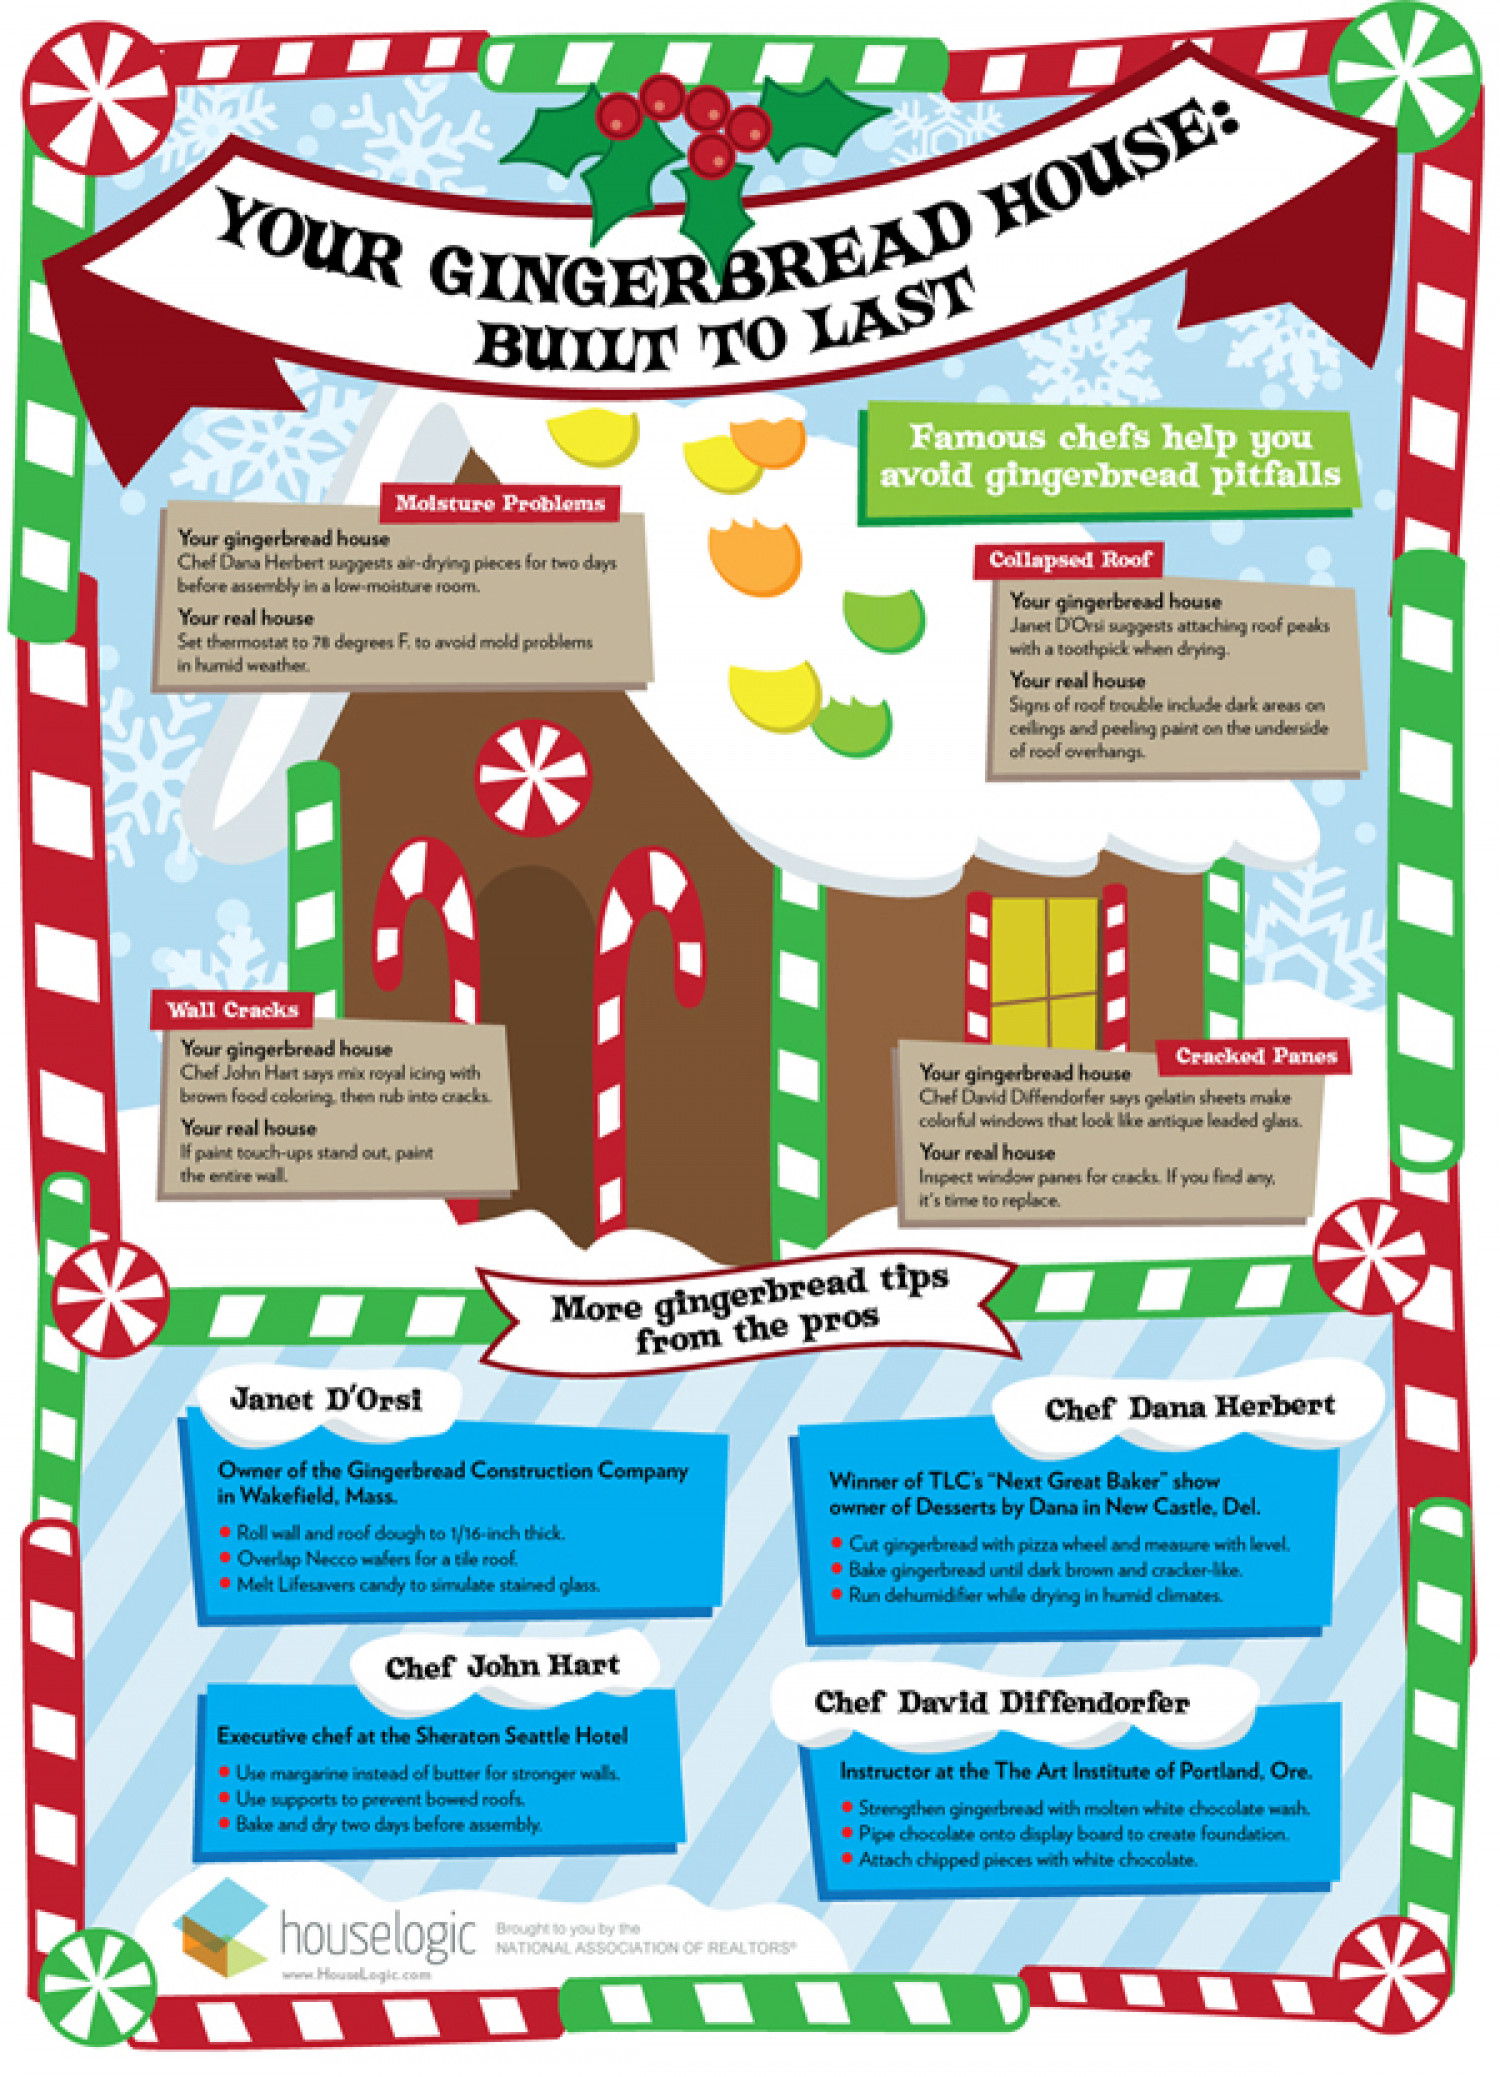 Built to last: Gingerbread Edition Infographic